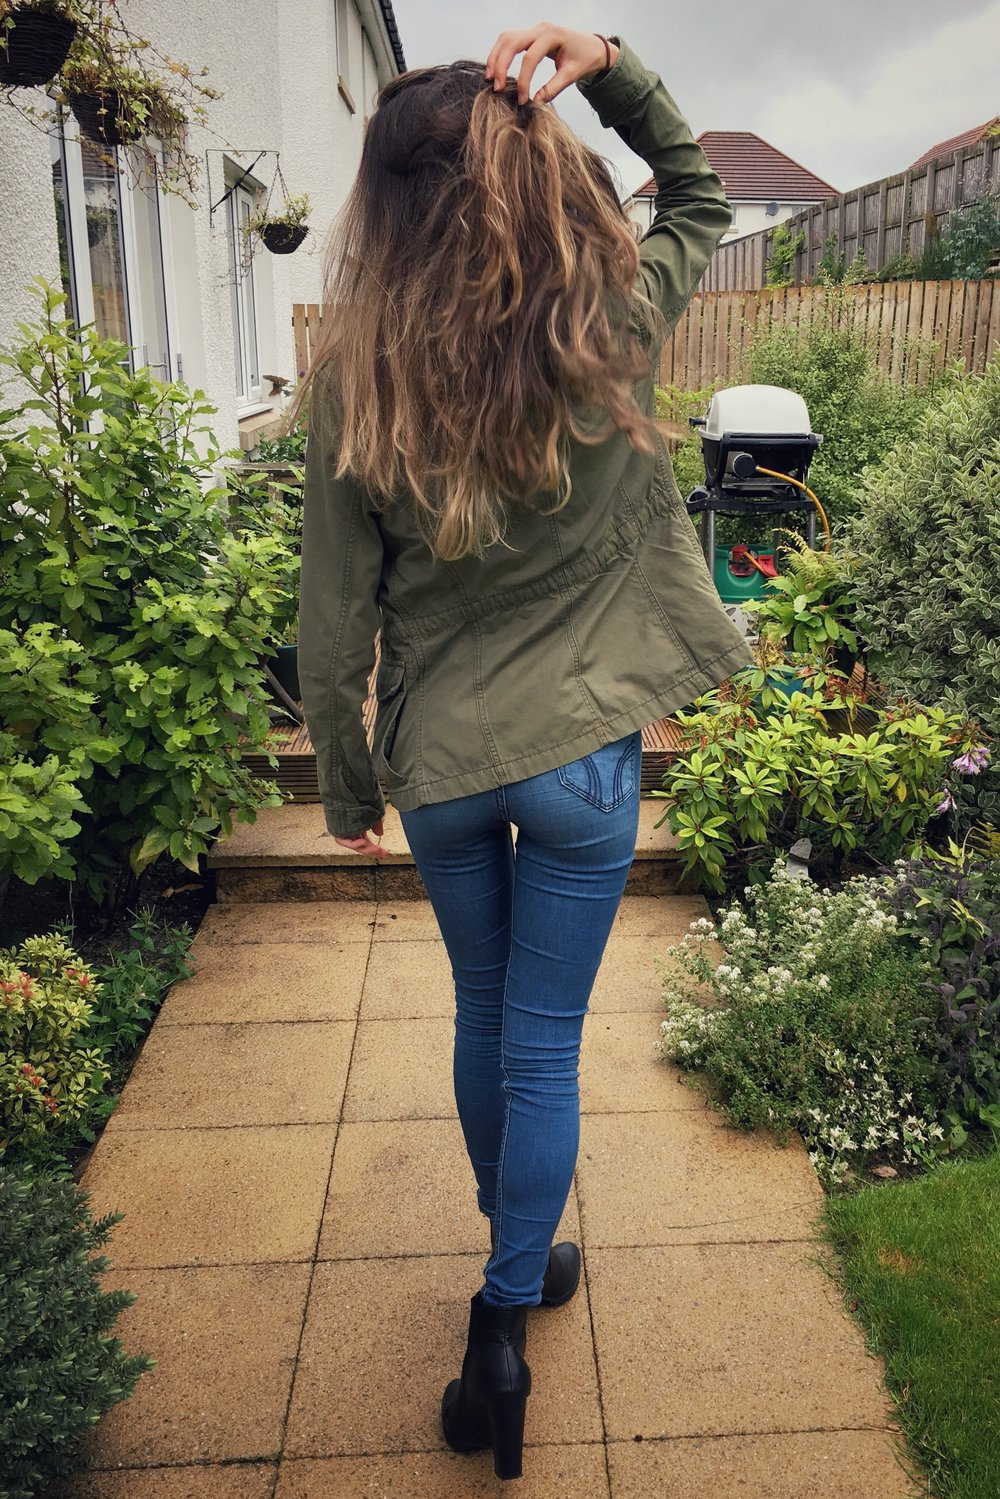 green jacket, denim jeans, grey crop top and black boots